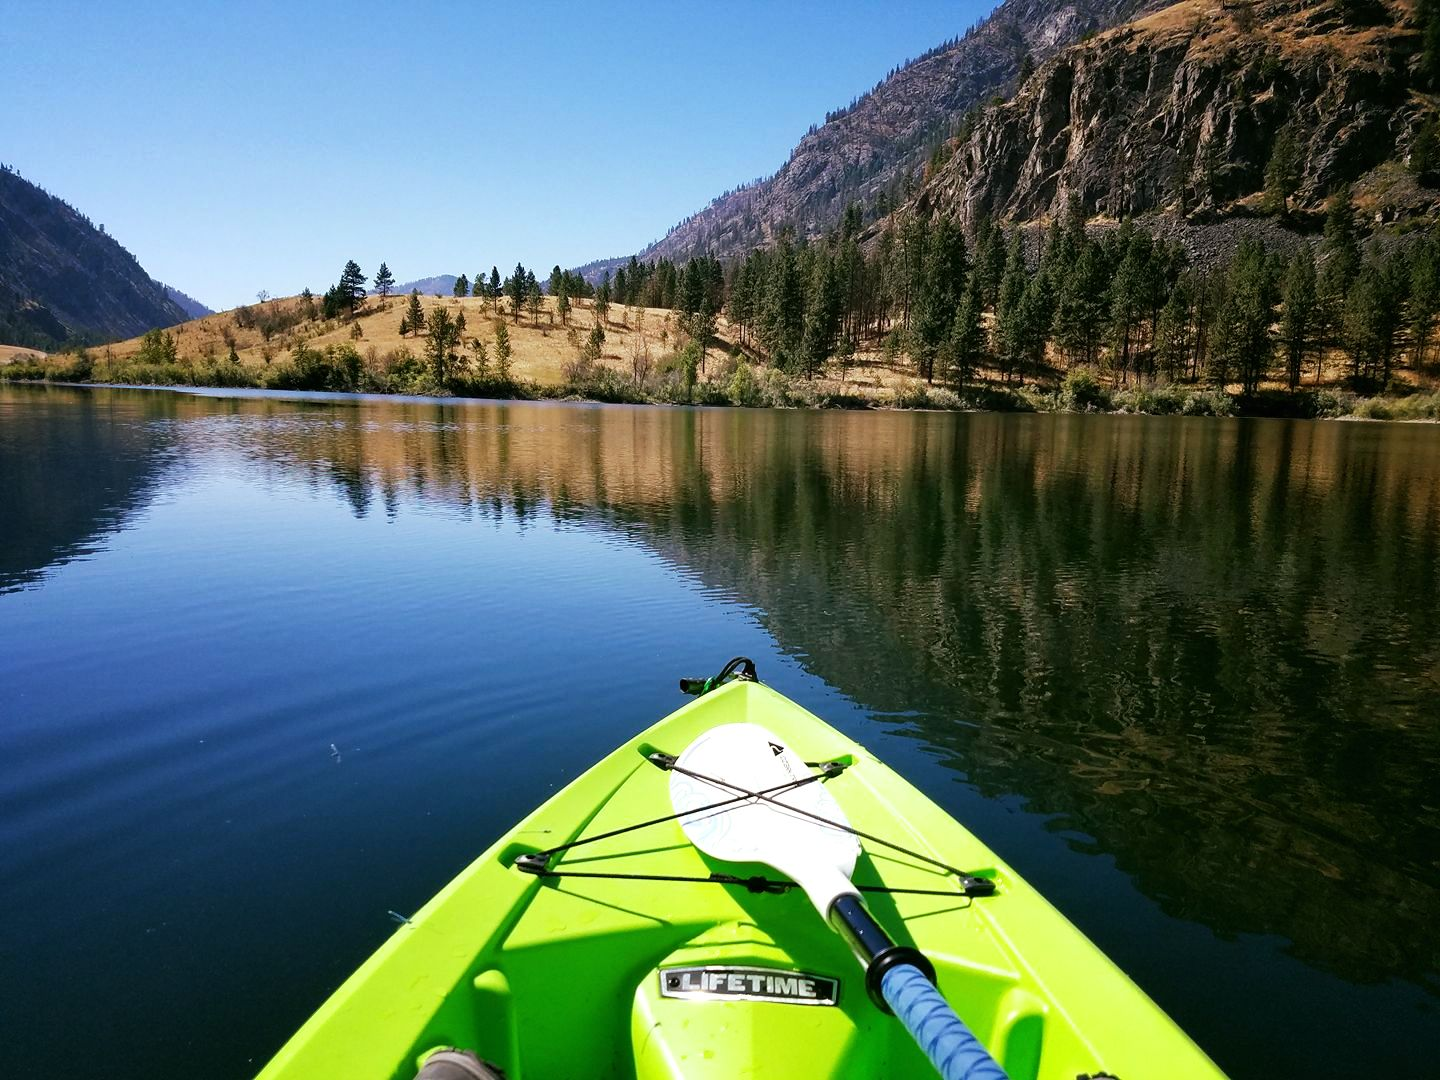 Kayaking on Blue Lake by Jennifer Croasdale Dunham